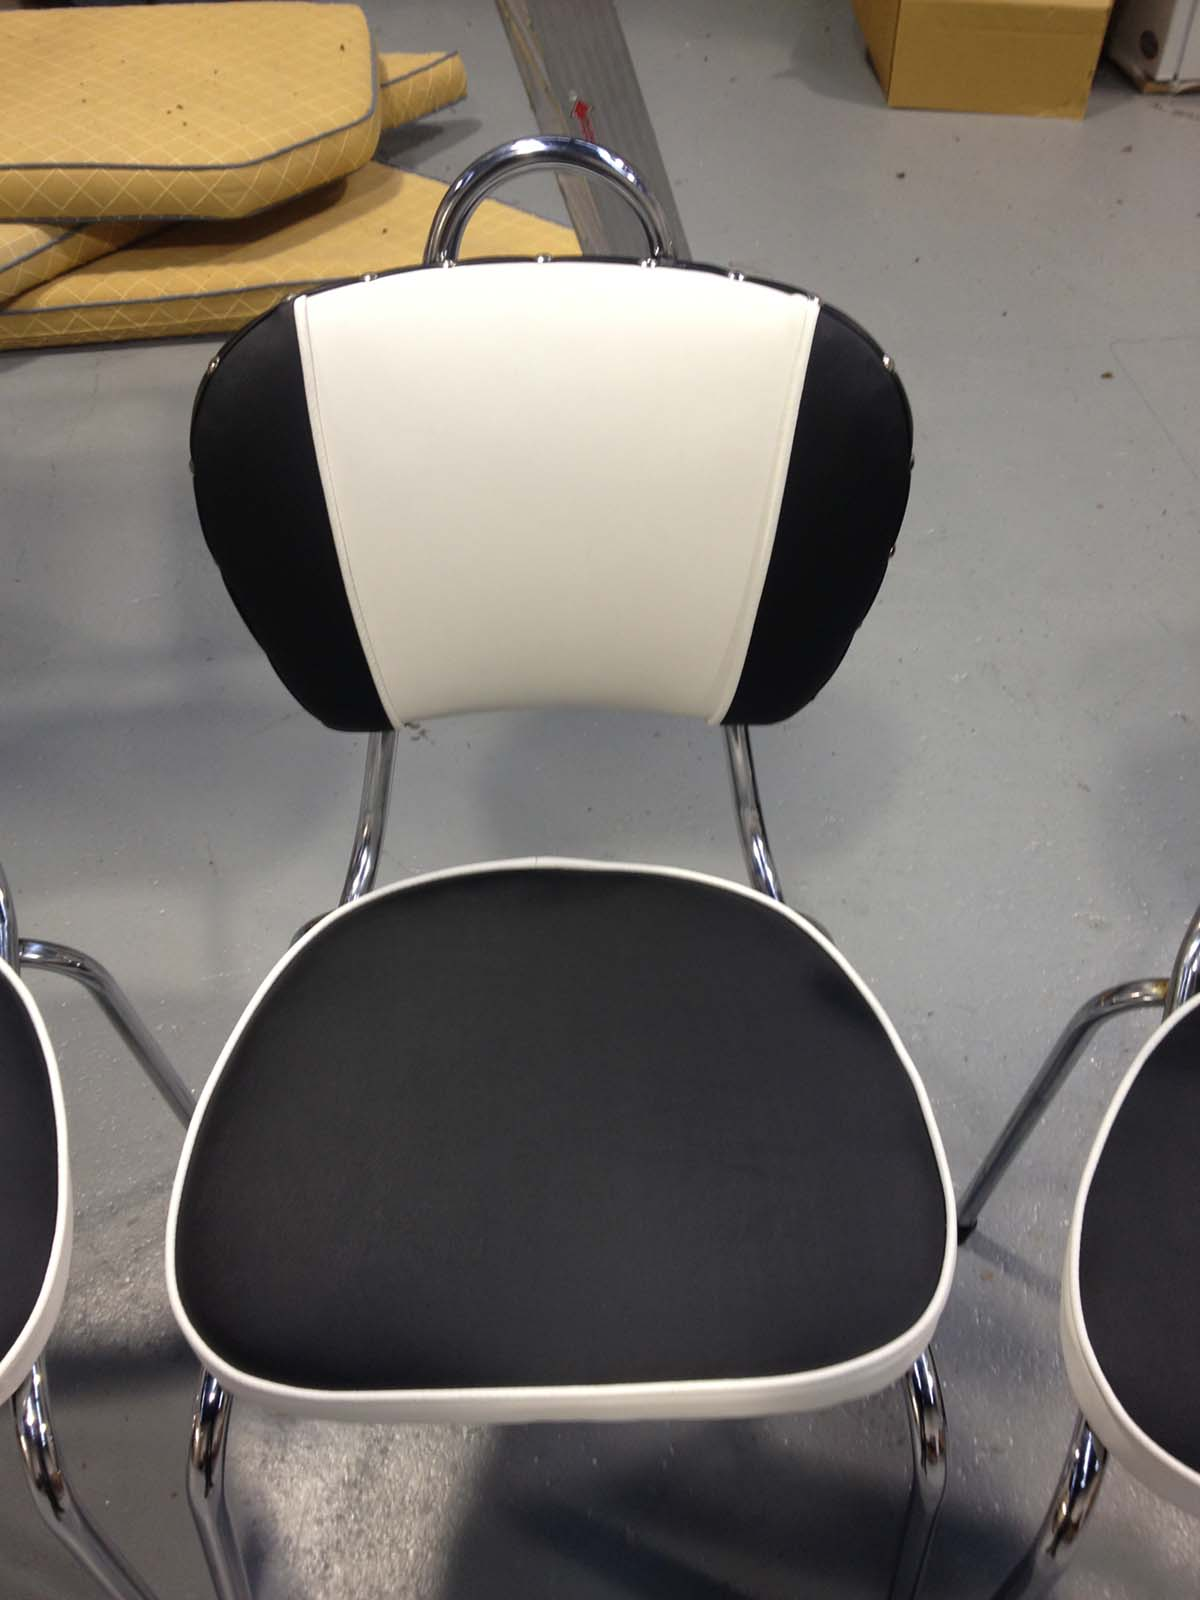 Retro Dining Chairs in black and white Vinyl